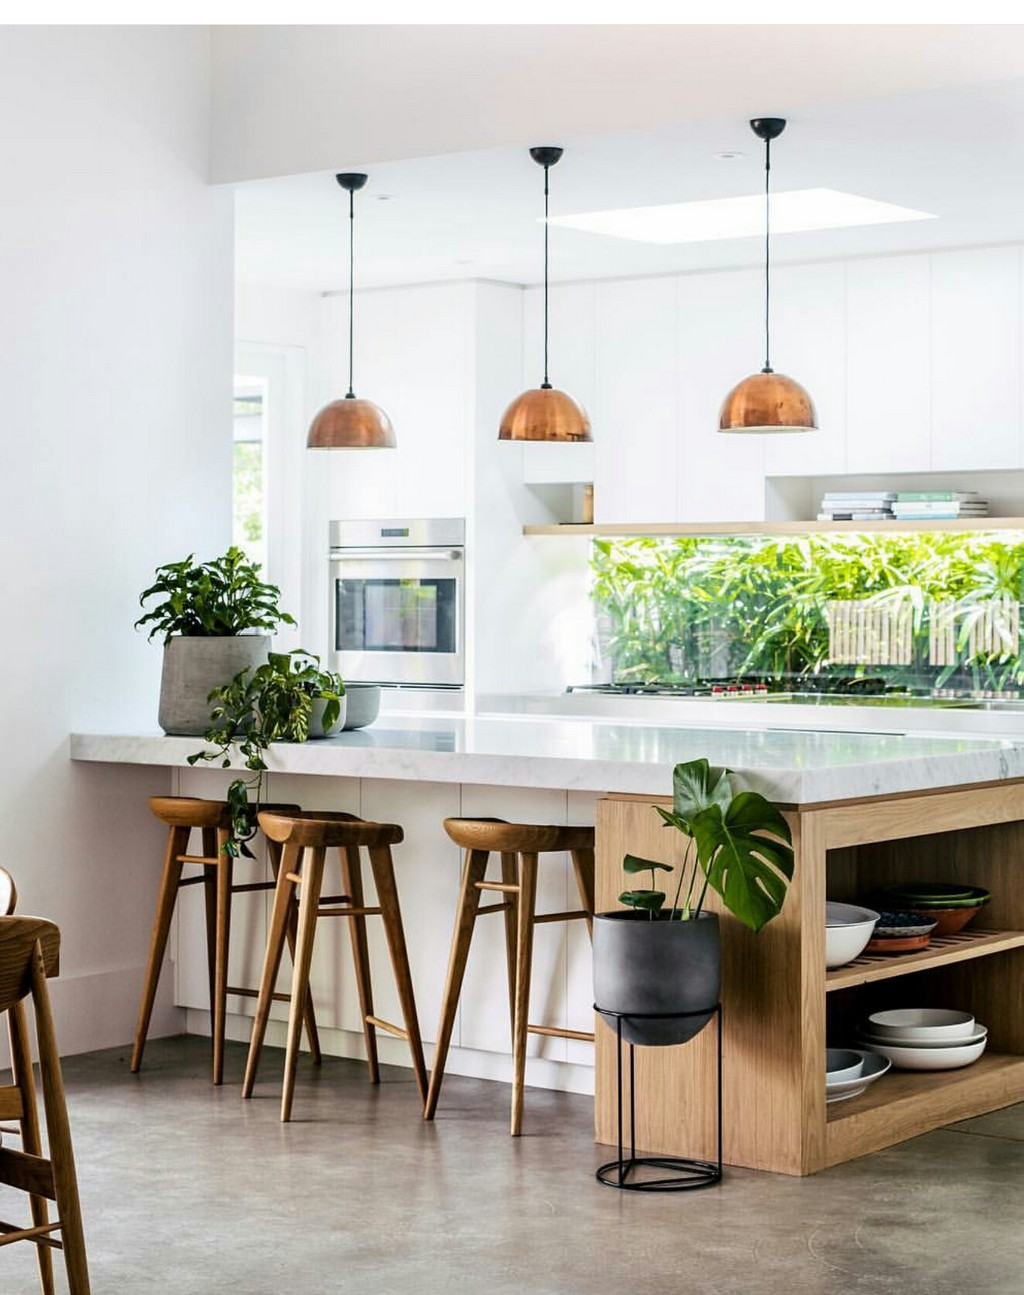 countertop stools kitchen anthony bourdain confidential cheer up your breakfast time with 6 new counter bar if remodel plan includes using lots of plants and wooden elements make sure to get a few that go style